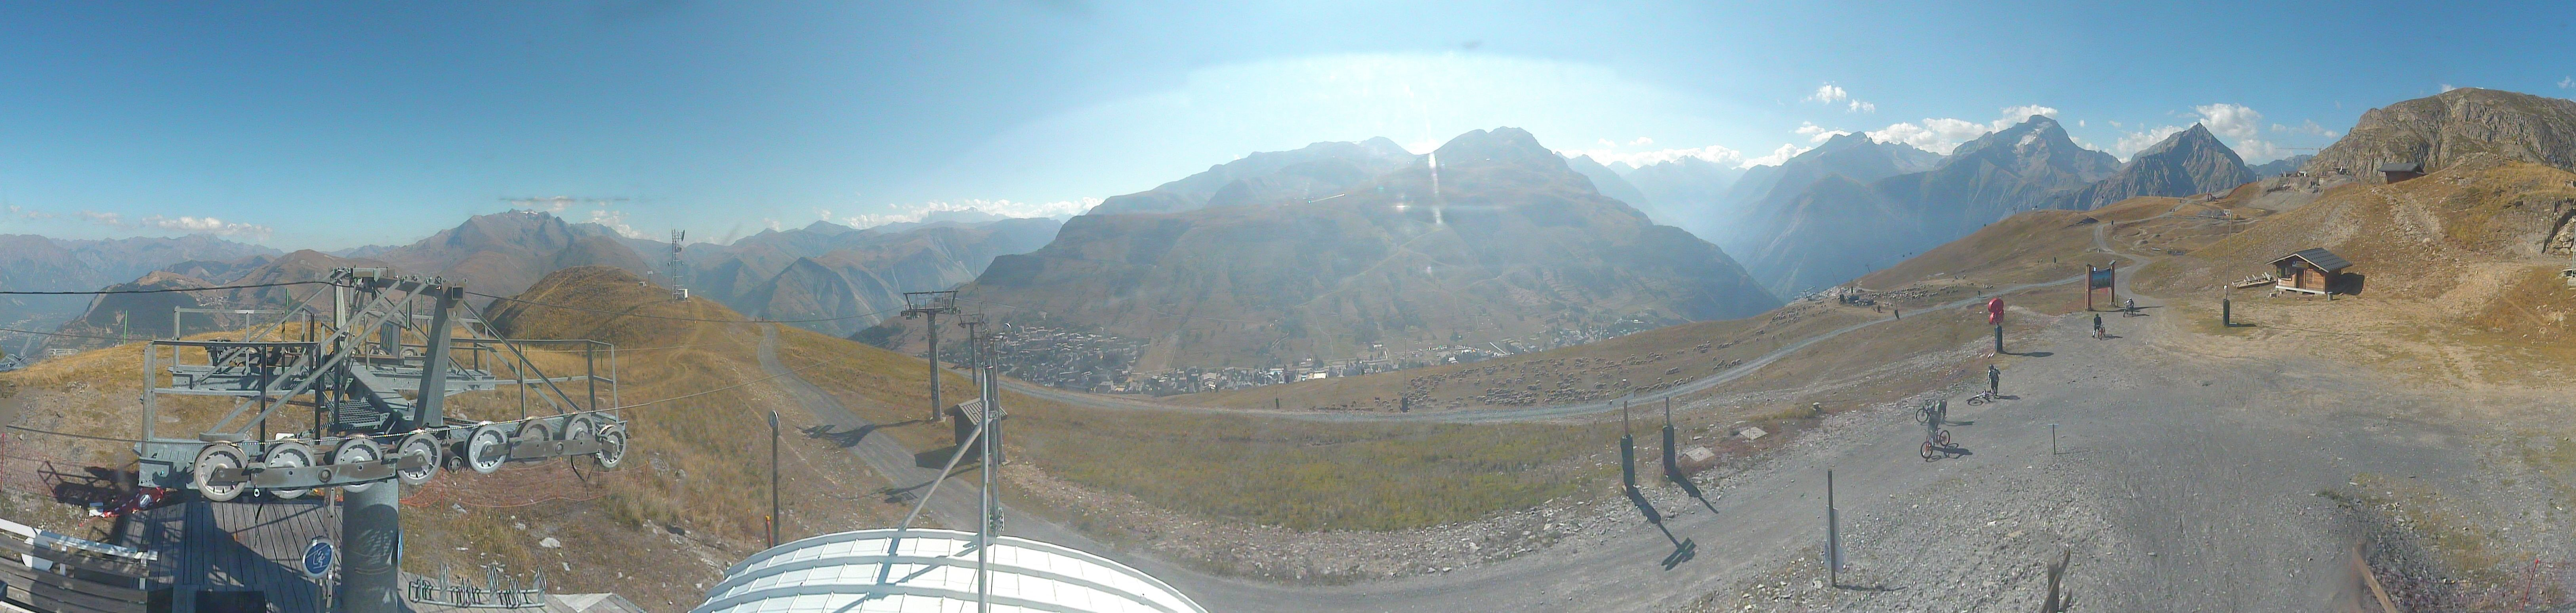 Webcams Les 2 Alpes